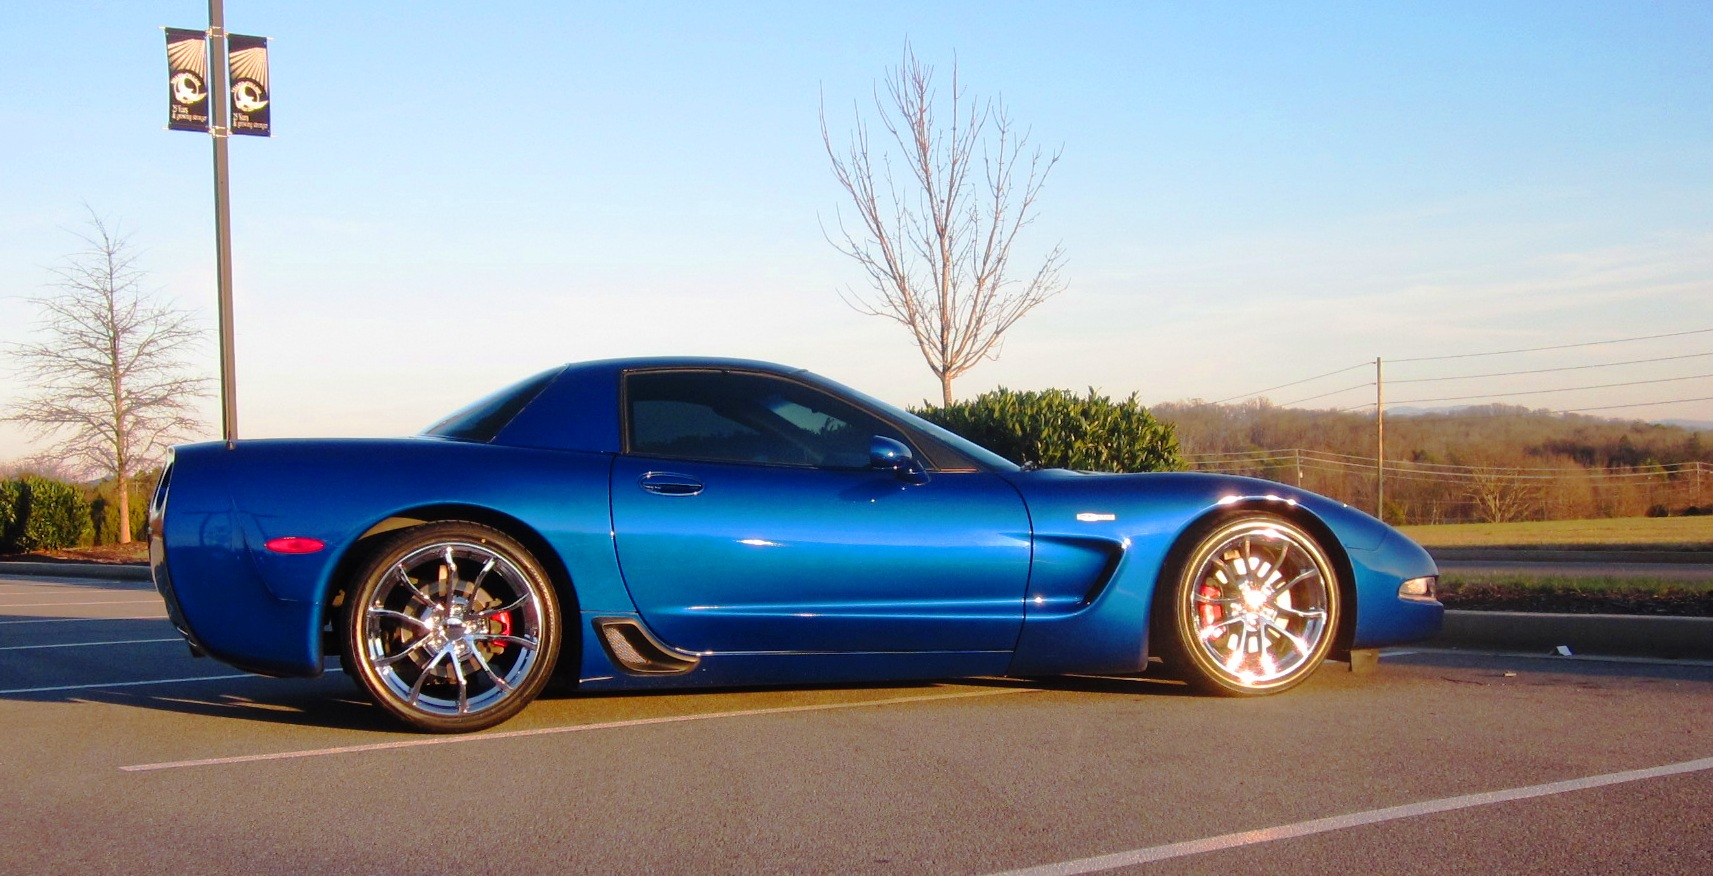 Electron Blue C5z With Centennial Cup Wheels In Chrome